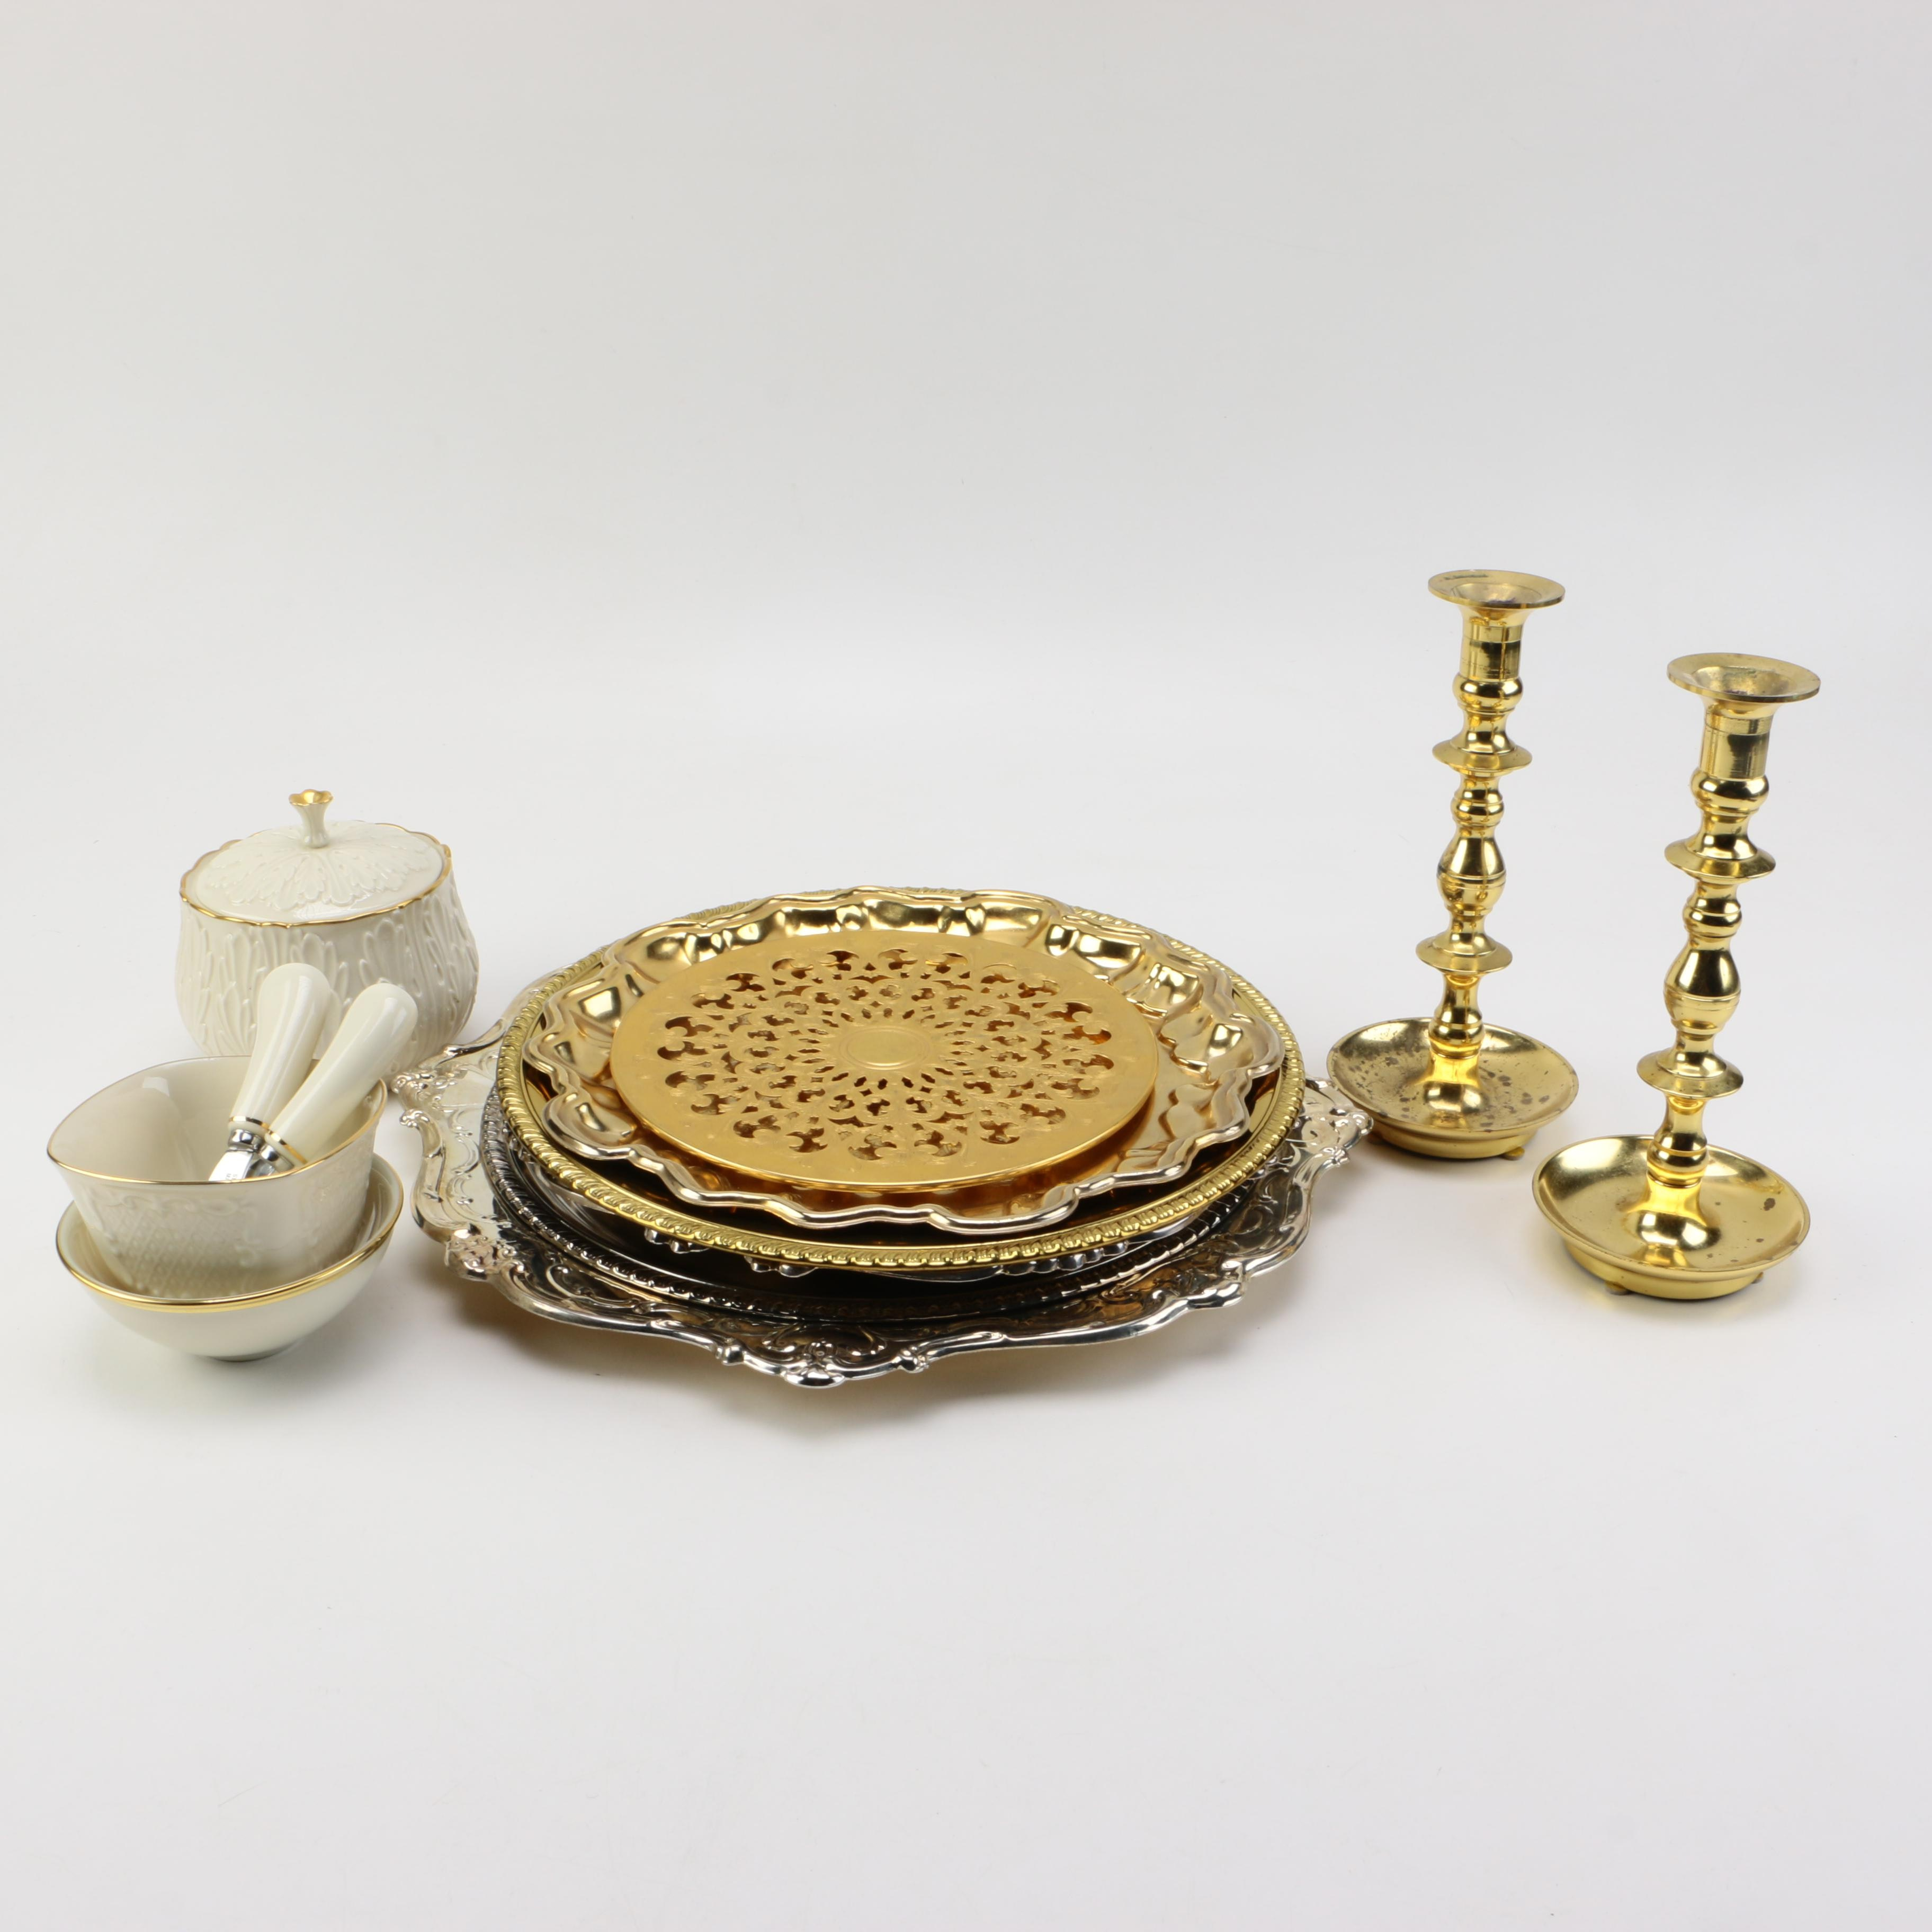 Lehman 24K Gold Plated Trivet, Lenox Porcelain, and Silver Plate Serving Trays